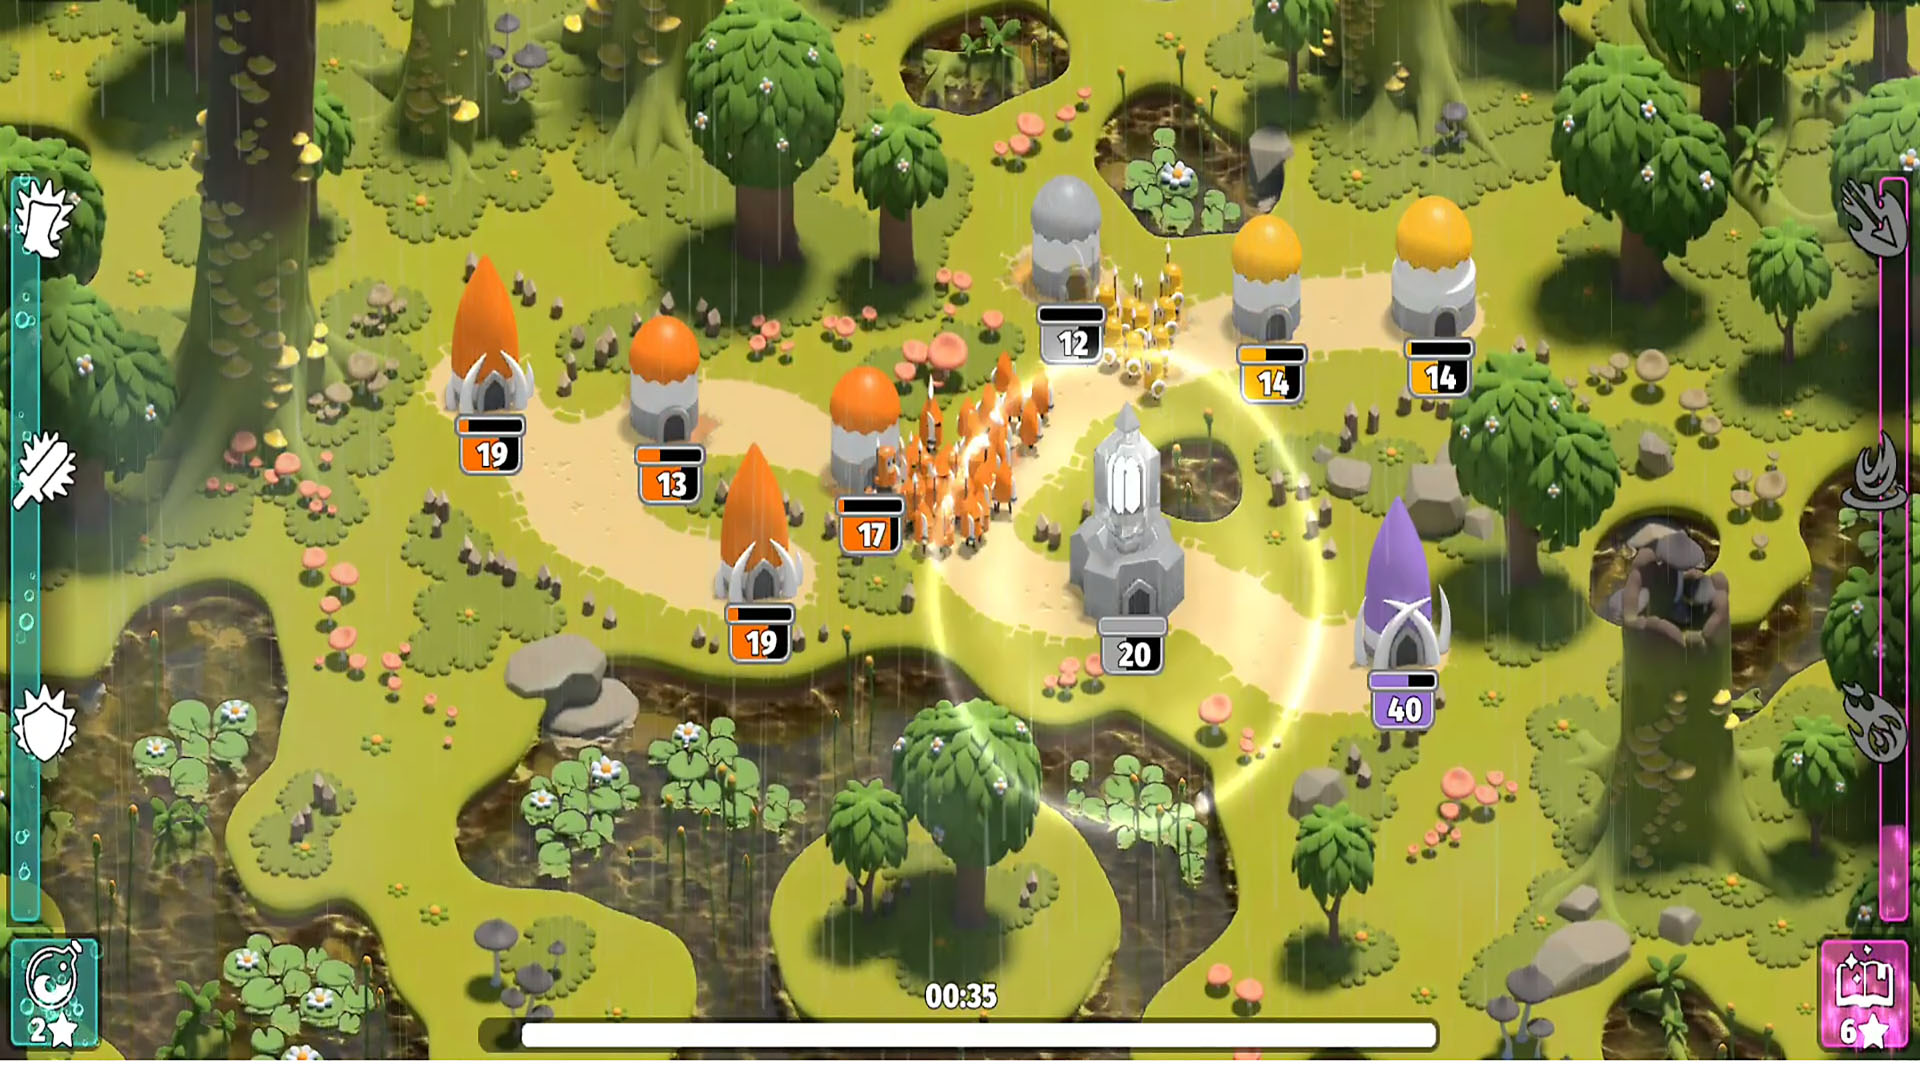 BattleTime 2 - Real Time Strategy Offline Game for Android